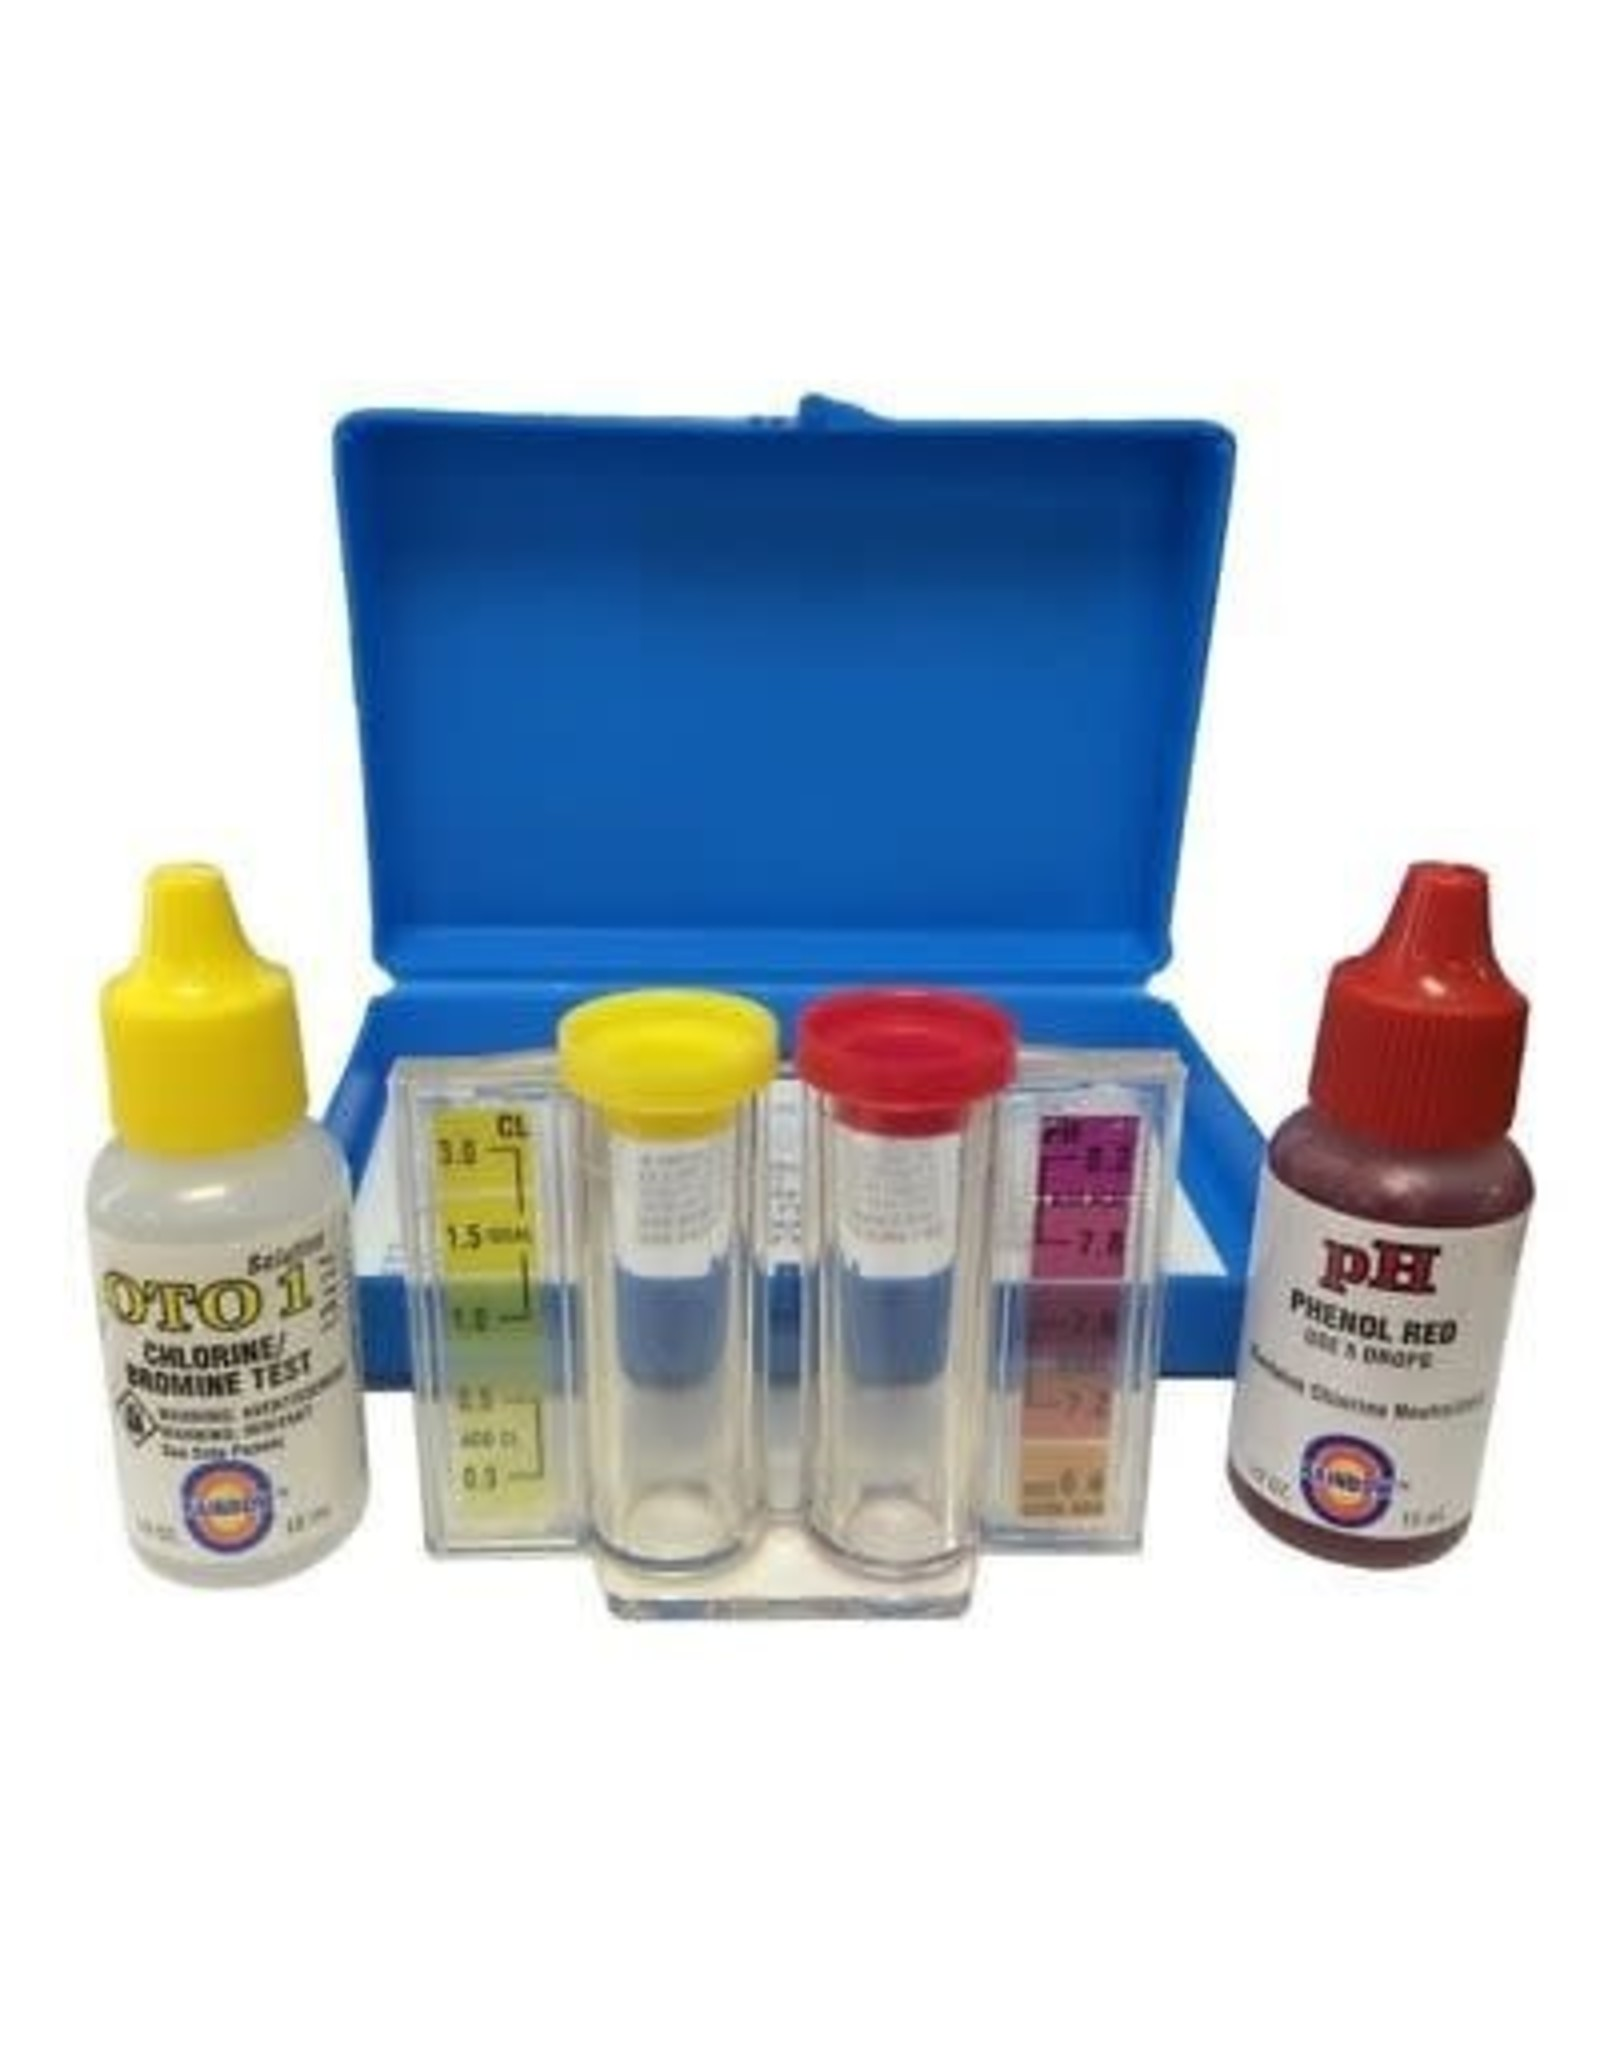 Pentair Drop Kit 2 in 1 Chlorine/Bromine and PH (Pentair)